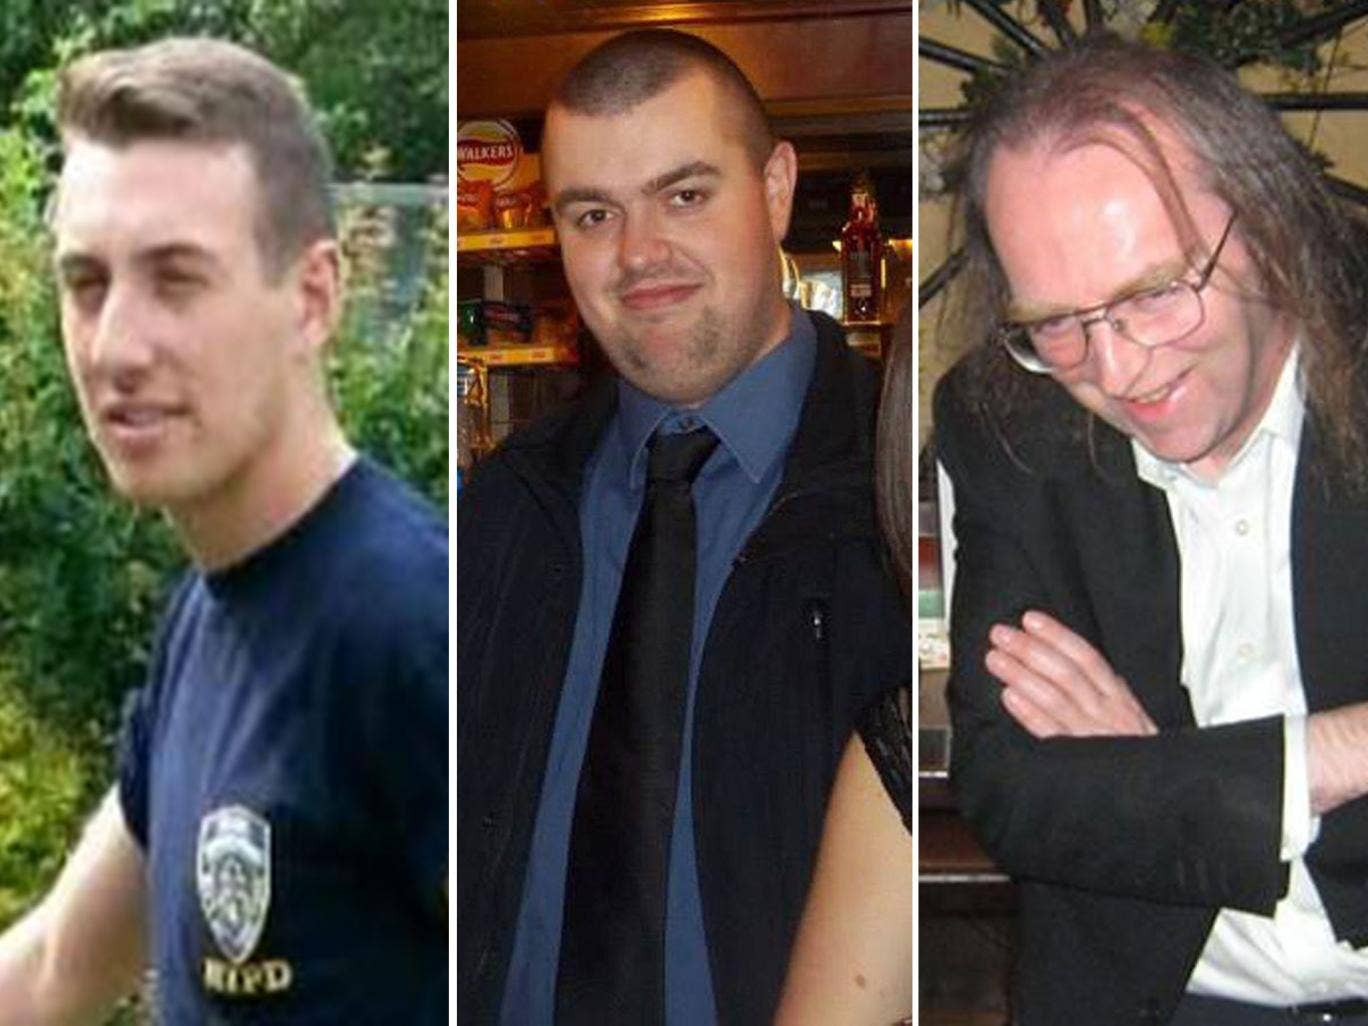 Victims of the crash: (from left to right) Ben Pocock, Liam Sweeney and John Alder